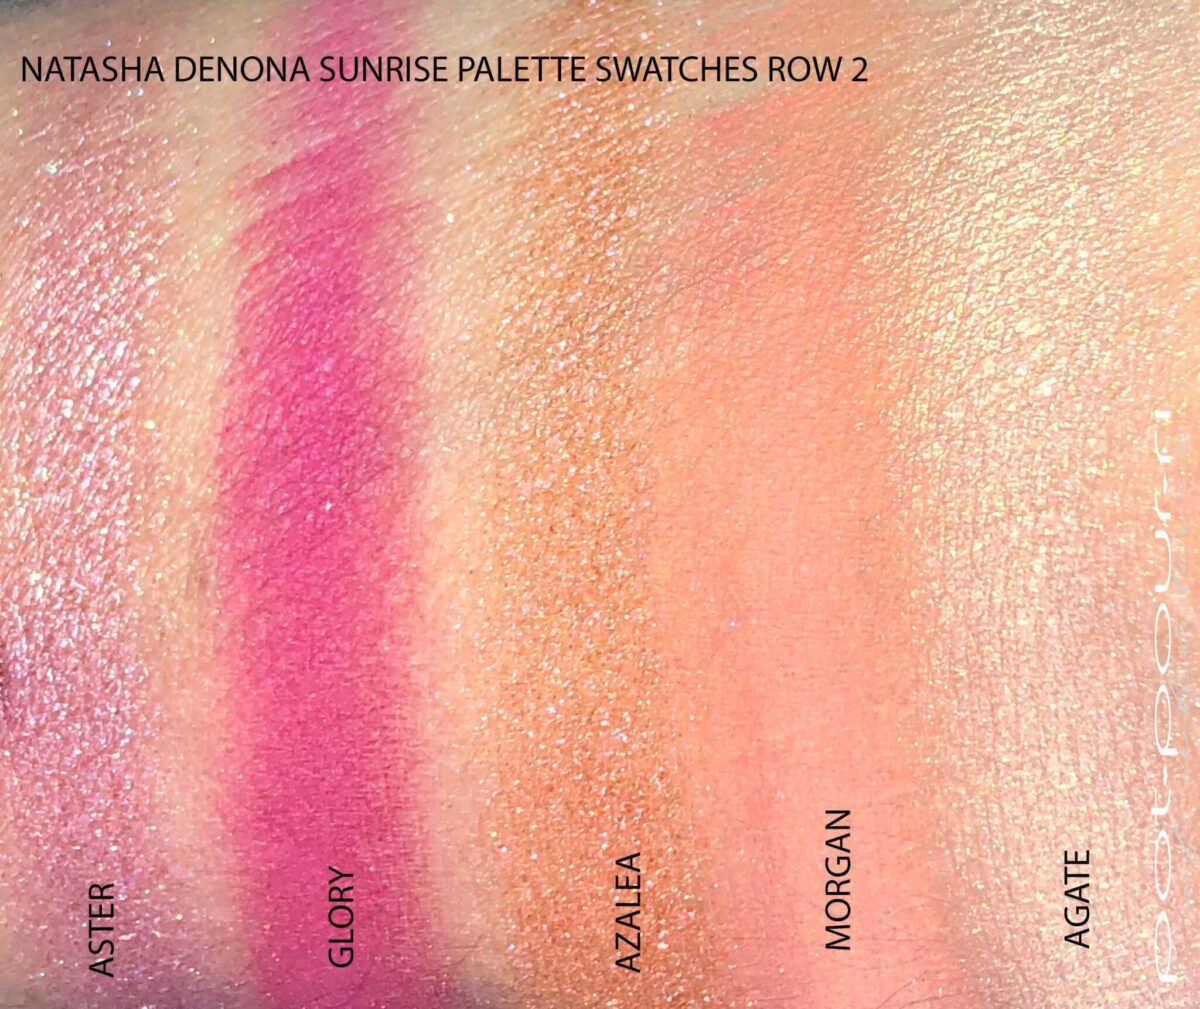 SWATCHES FOR THE SECOND ROW